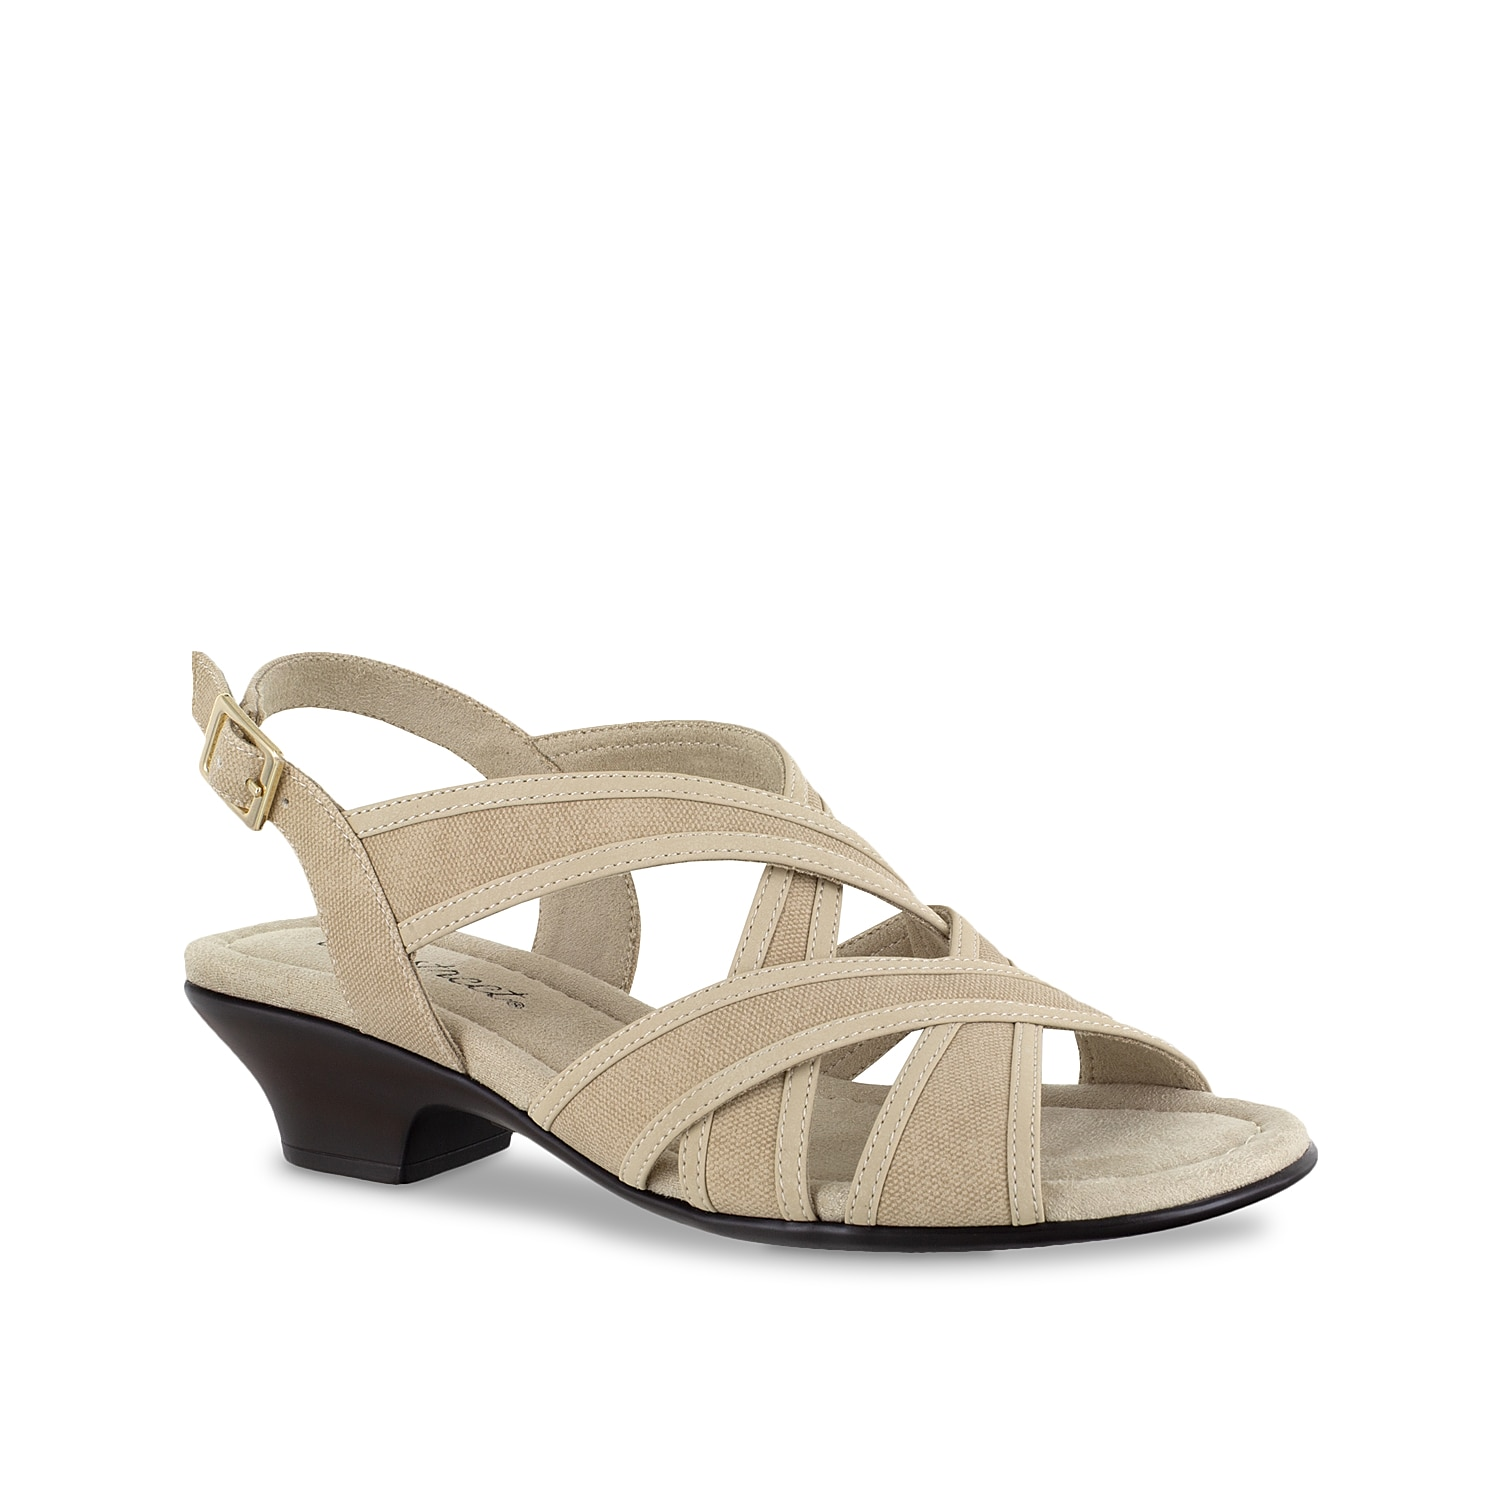 Easy Street brings you unbeatable comfort with the Viola sandal. This silhouette is fashioned with multiple crisscross straps and a generously cushioned footbed for cloud-like steps!